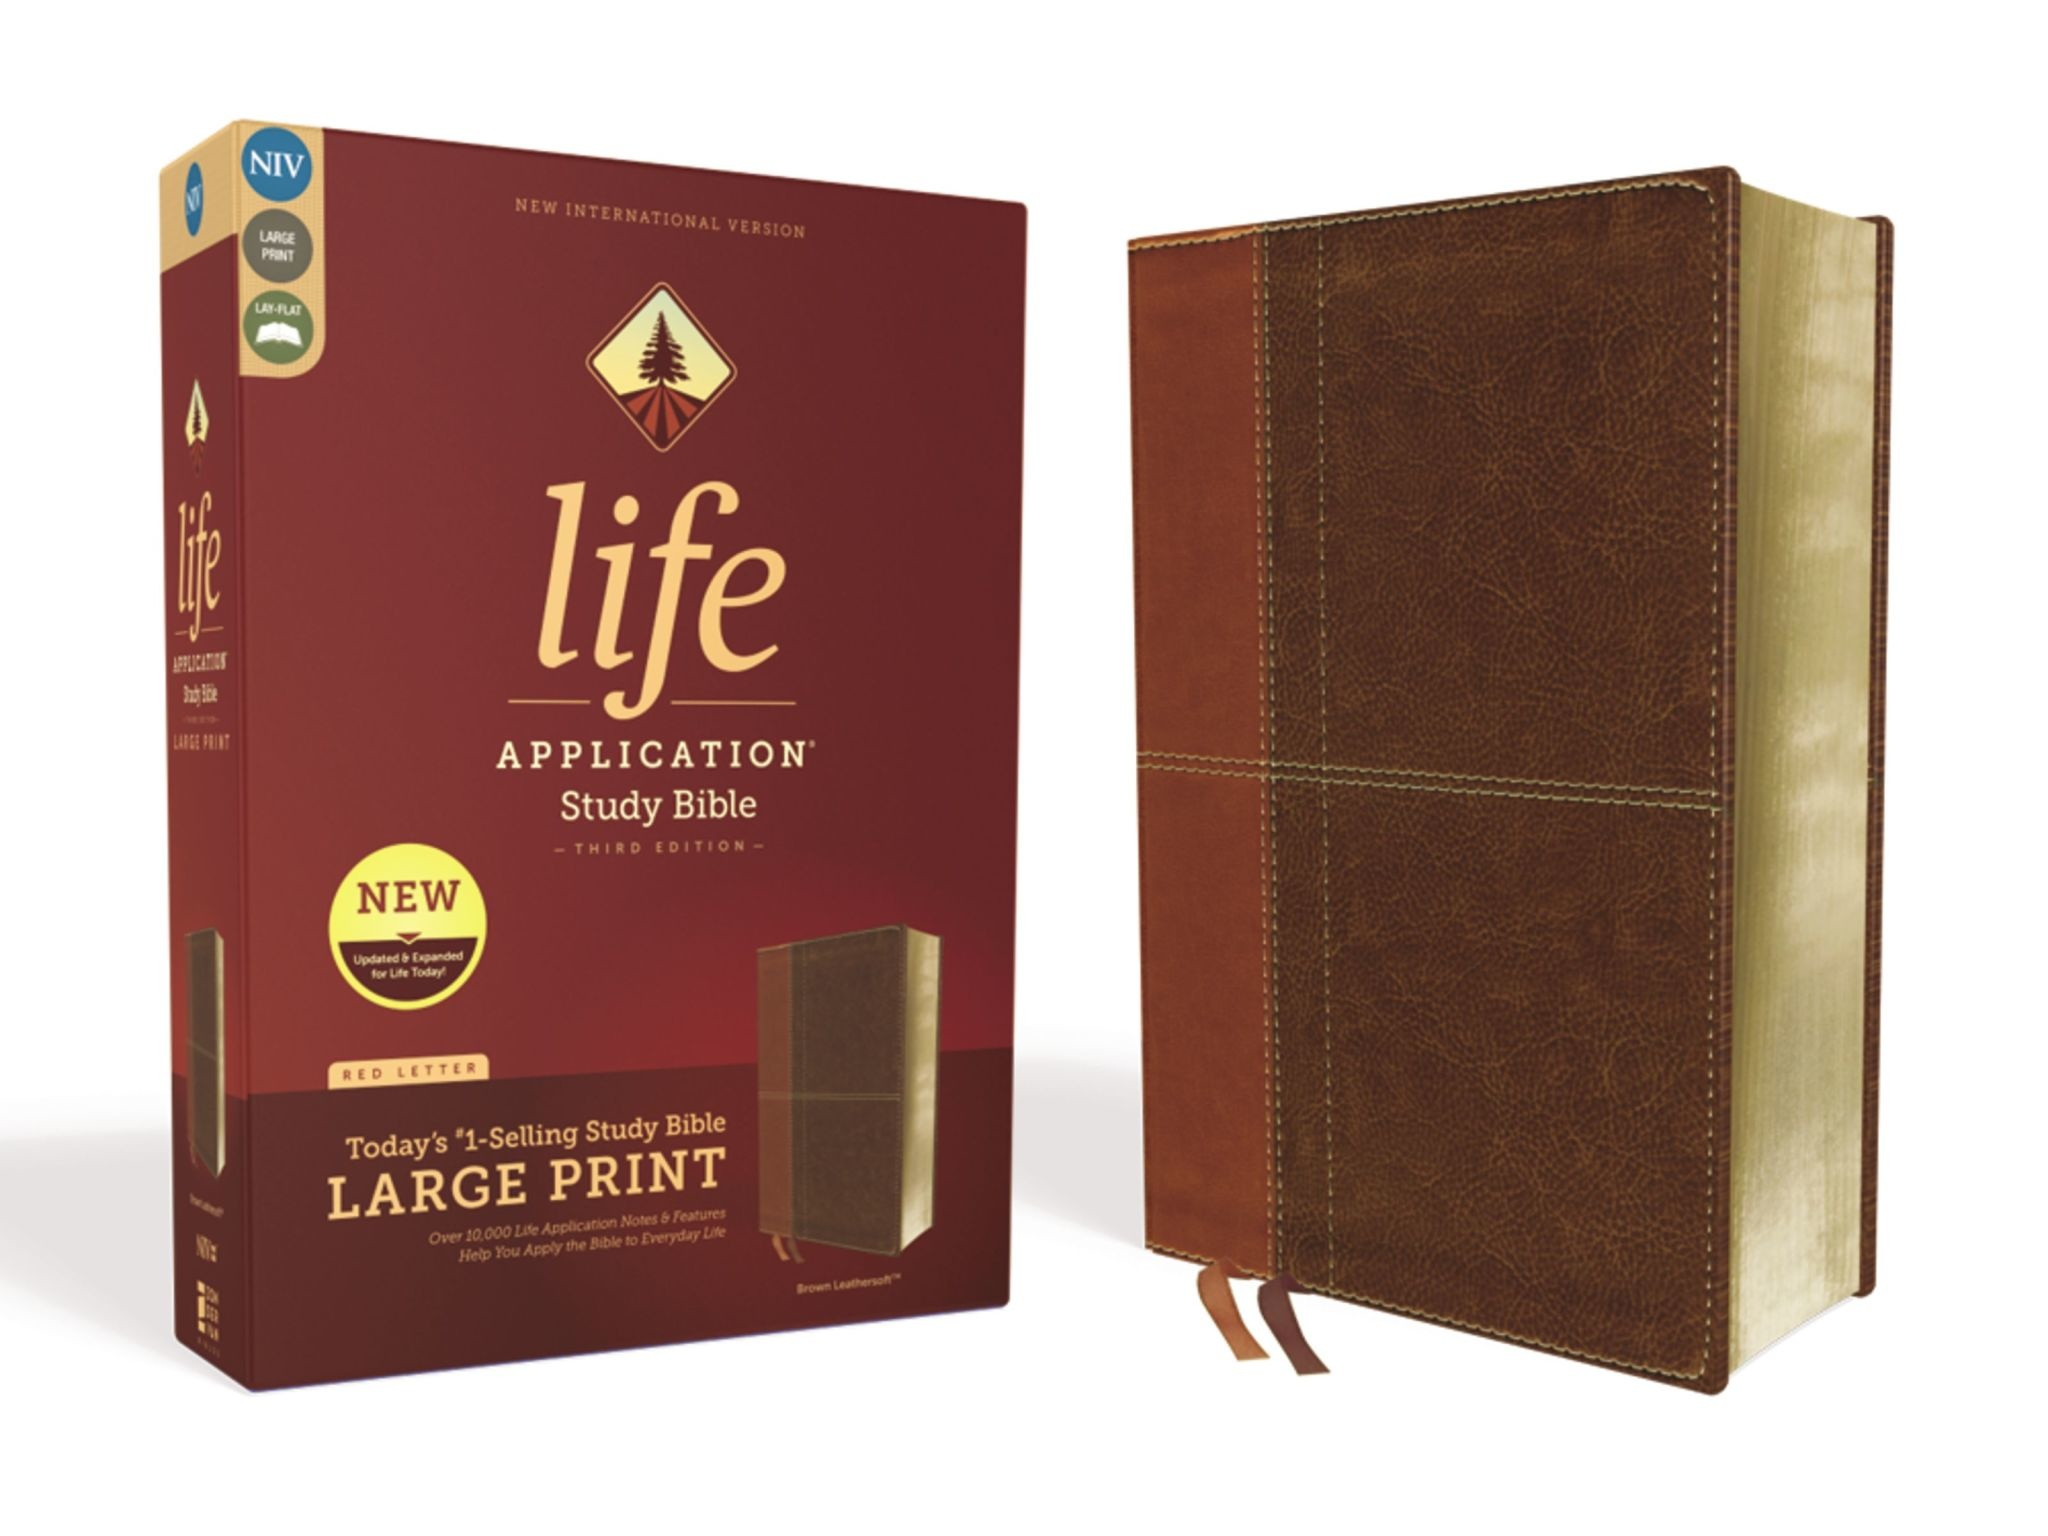 ZONDERVAN NIV Life Application Study Bible, Third Edition, Large Print, Leathersoft, Brown